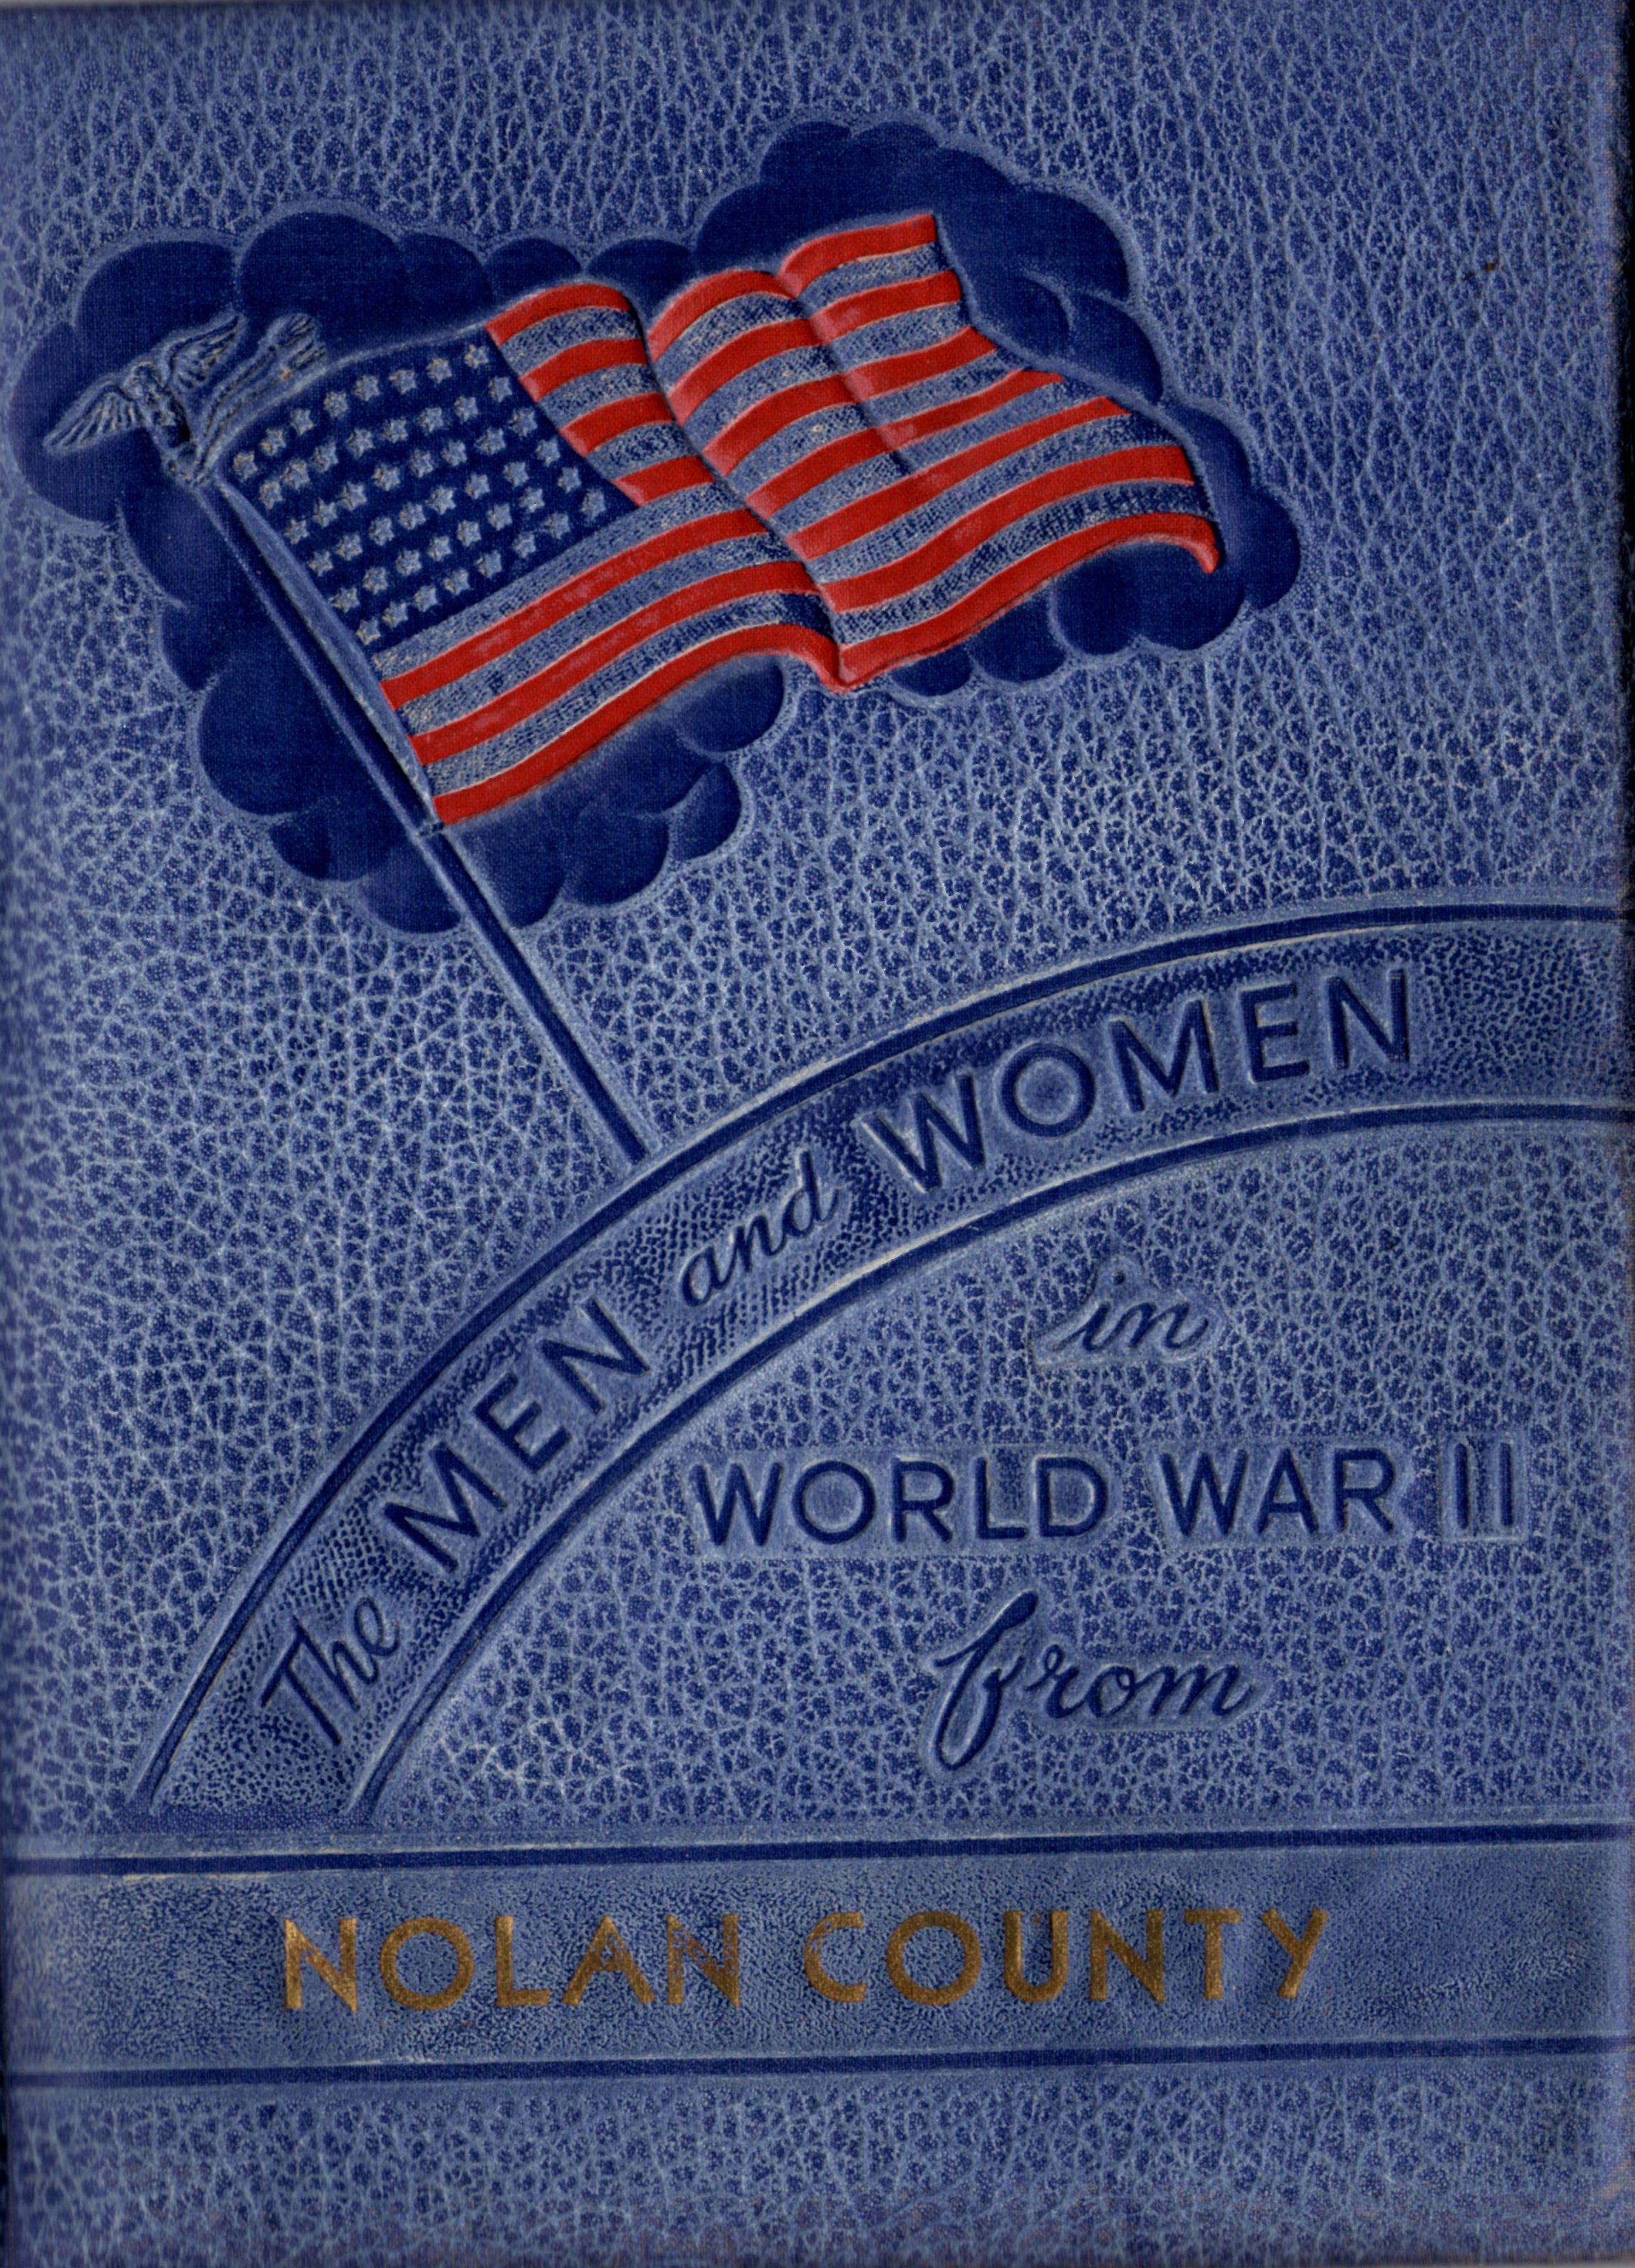 Men and women in the Armed Forces from Nolan County Texas World War II 2 !! Two11 WW2 WWII